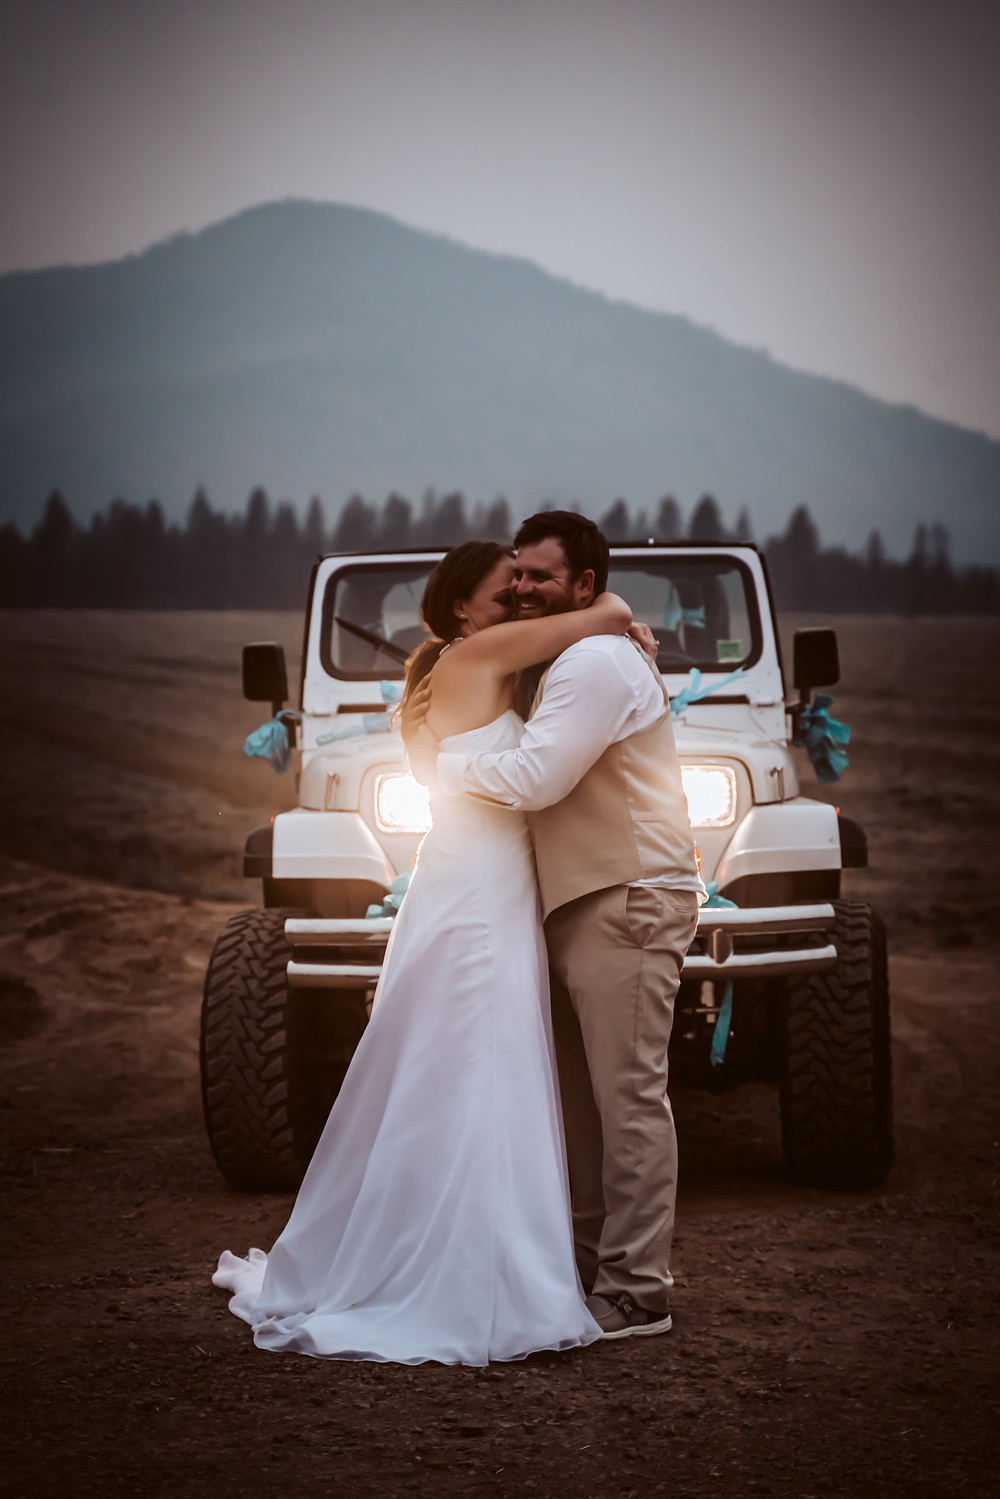 Bride and groom hugging in front of a jeep with lights on and mountains in the background